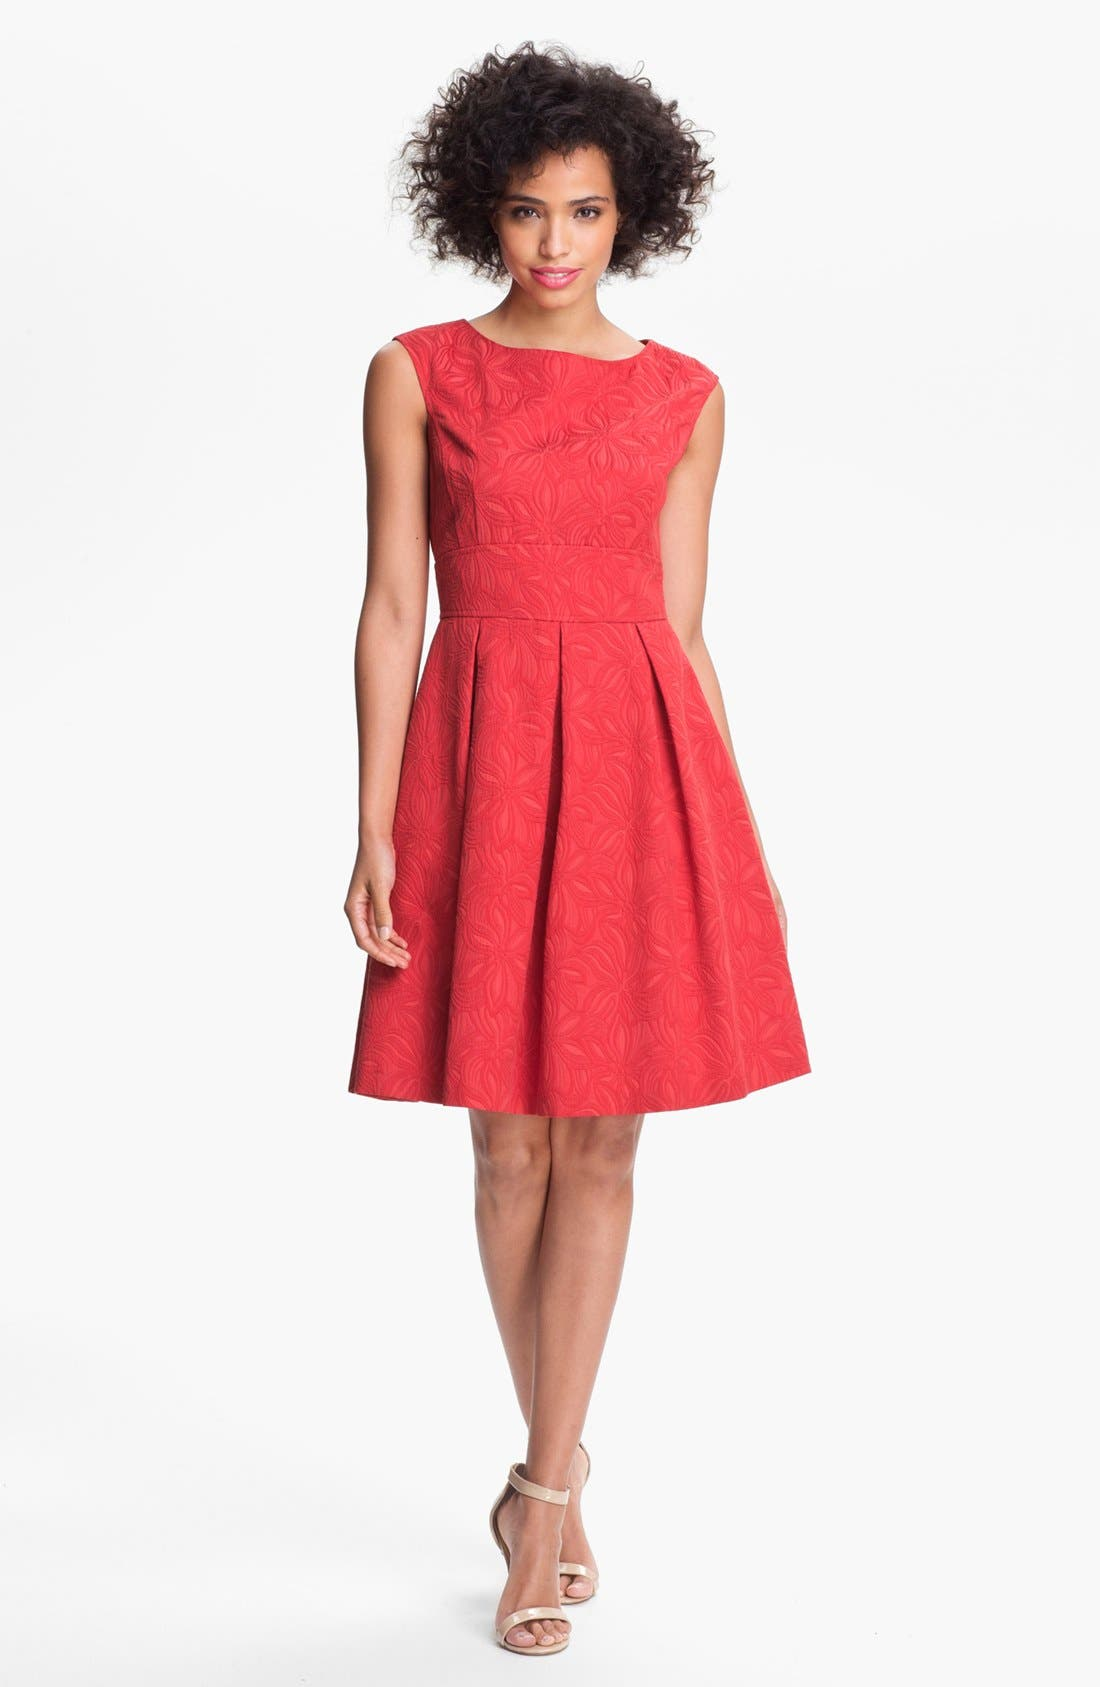 Alternate Image 1 Selected - Adrianna Papell Floral Jacquard Fit & Flare Dress (Petite)